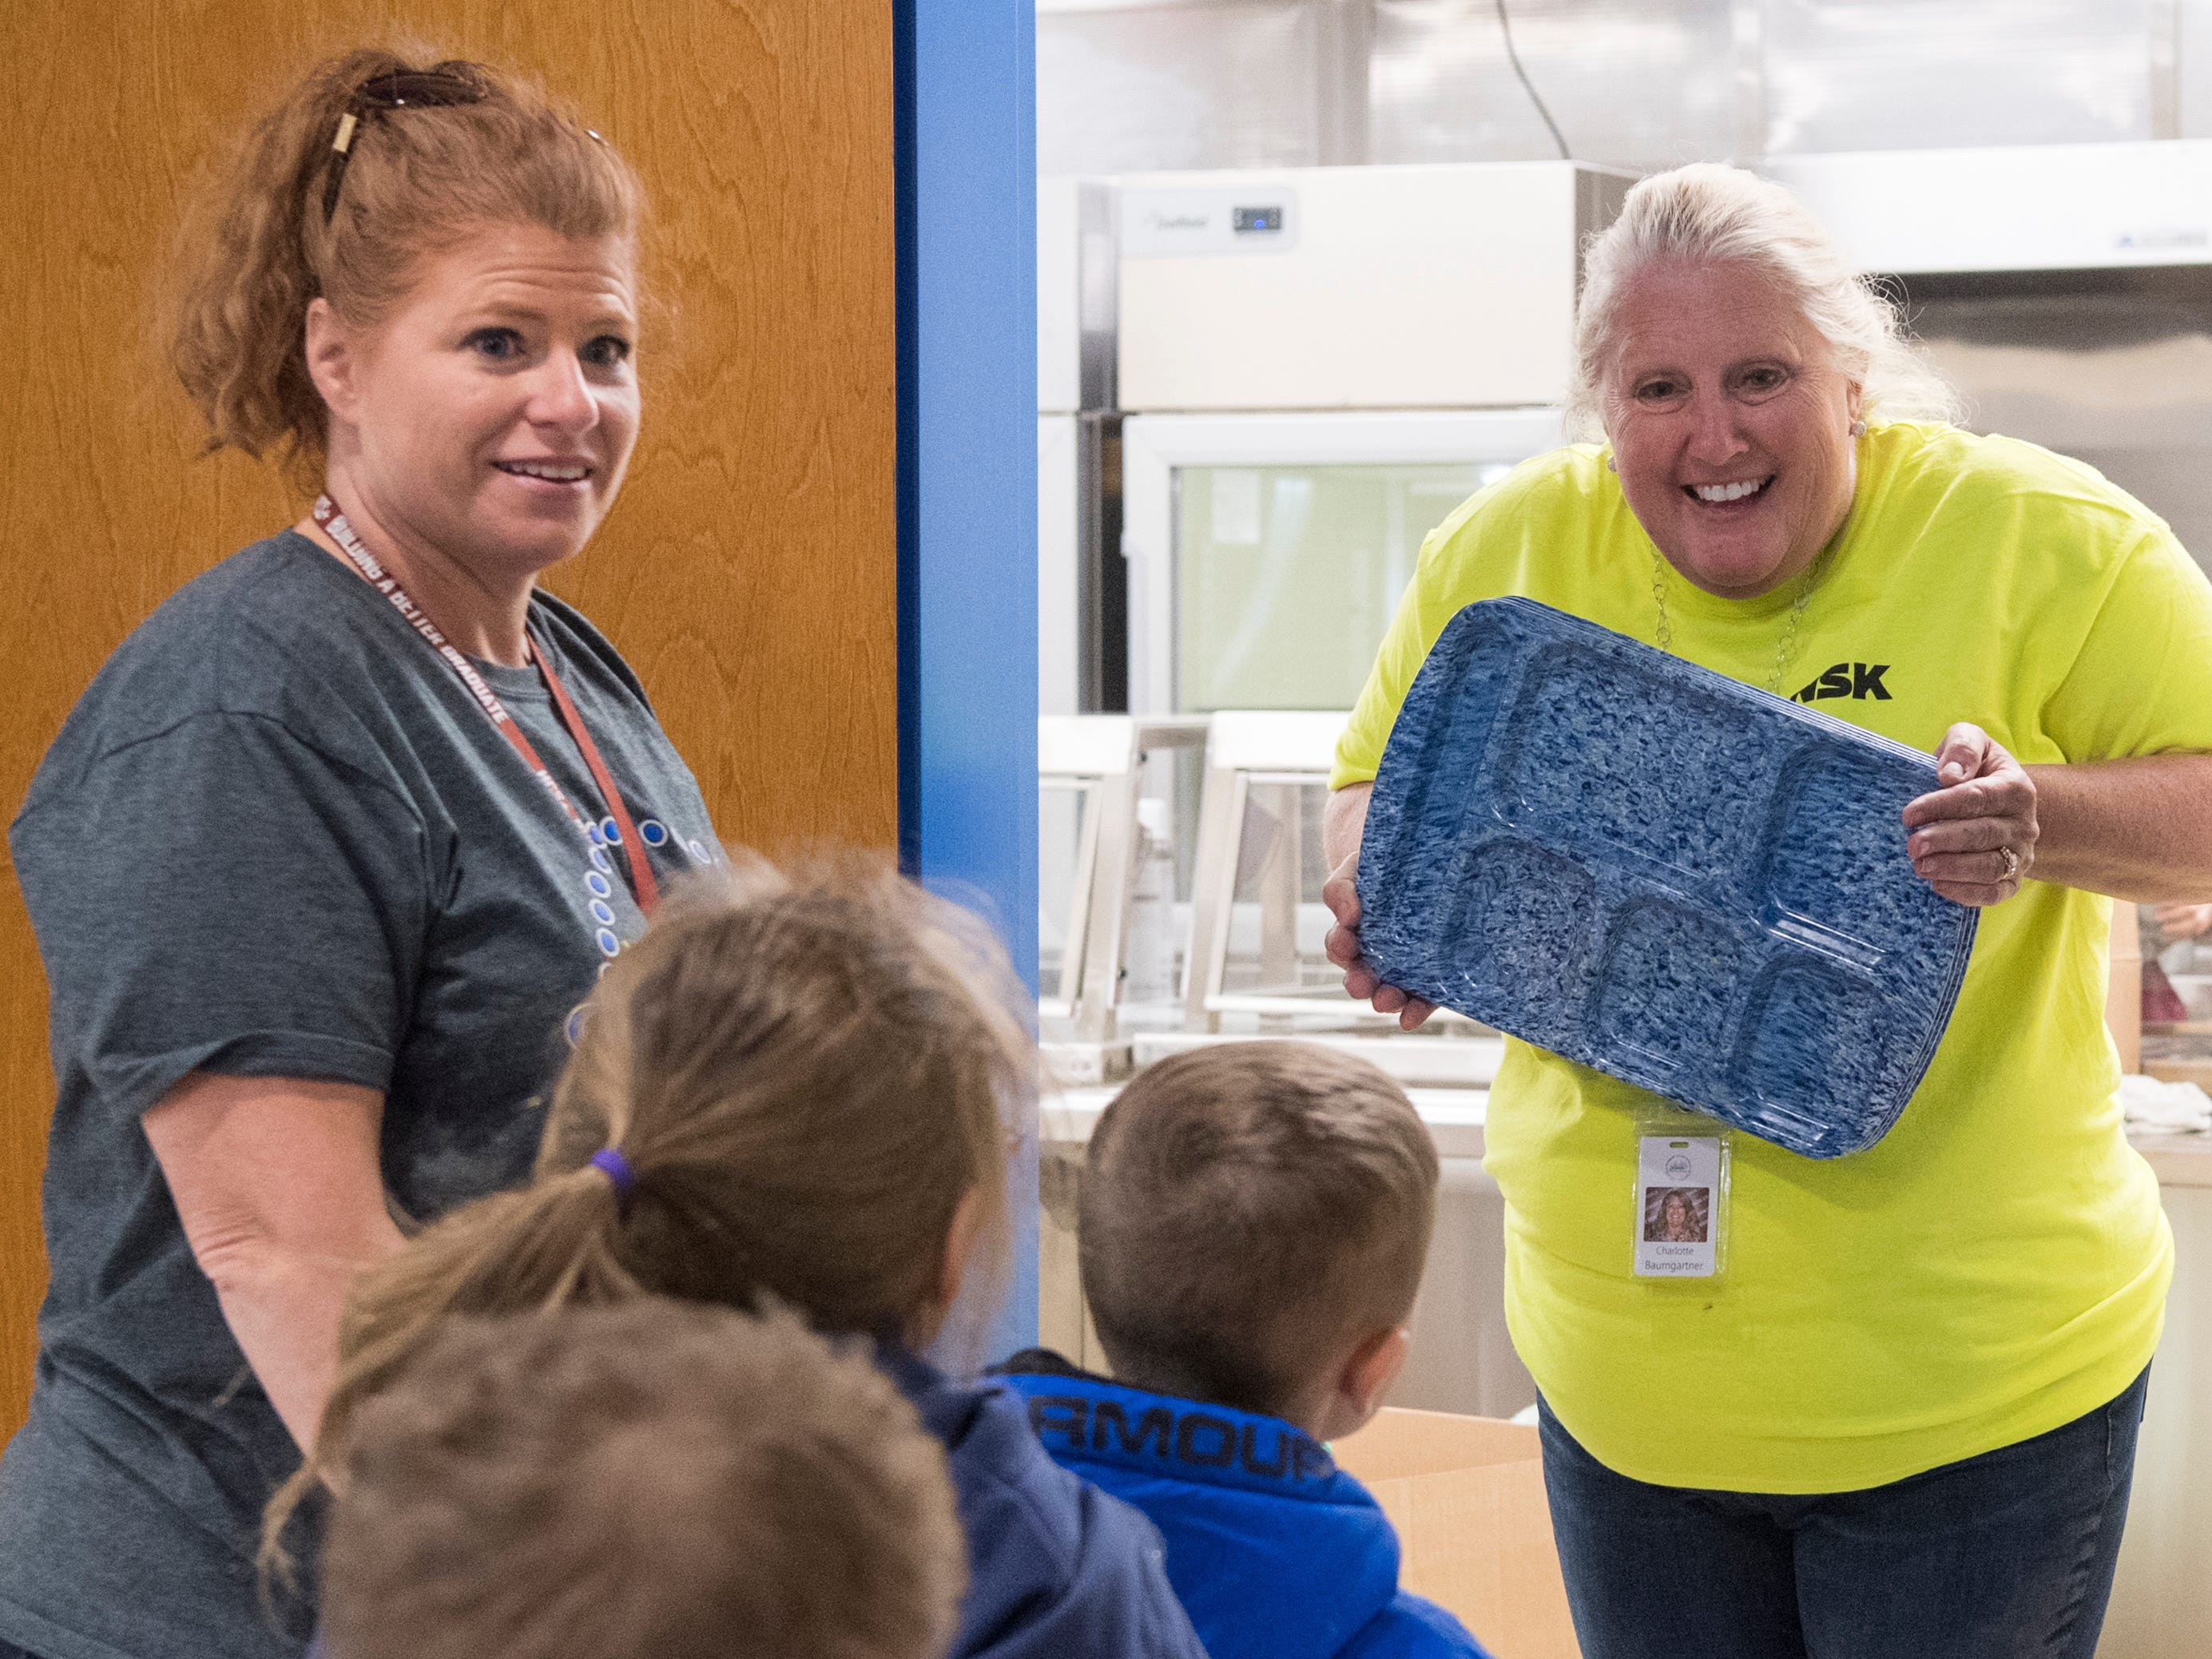 "Charlotte Baumgartner, Director of Child Nutrition, right, greets Dana Stauffer's kindergarten class, left, as they tour the cafeteria inside the new Spottsville Elementary school building in Spottsville, Ky., Friday morning, Nov. 9, 2018. The lunchroom features booths, ""high-top"" tables along with regular table seating and has a large array of doors that open out onto a patio and courtyard area."